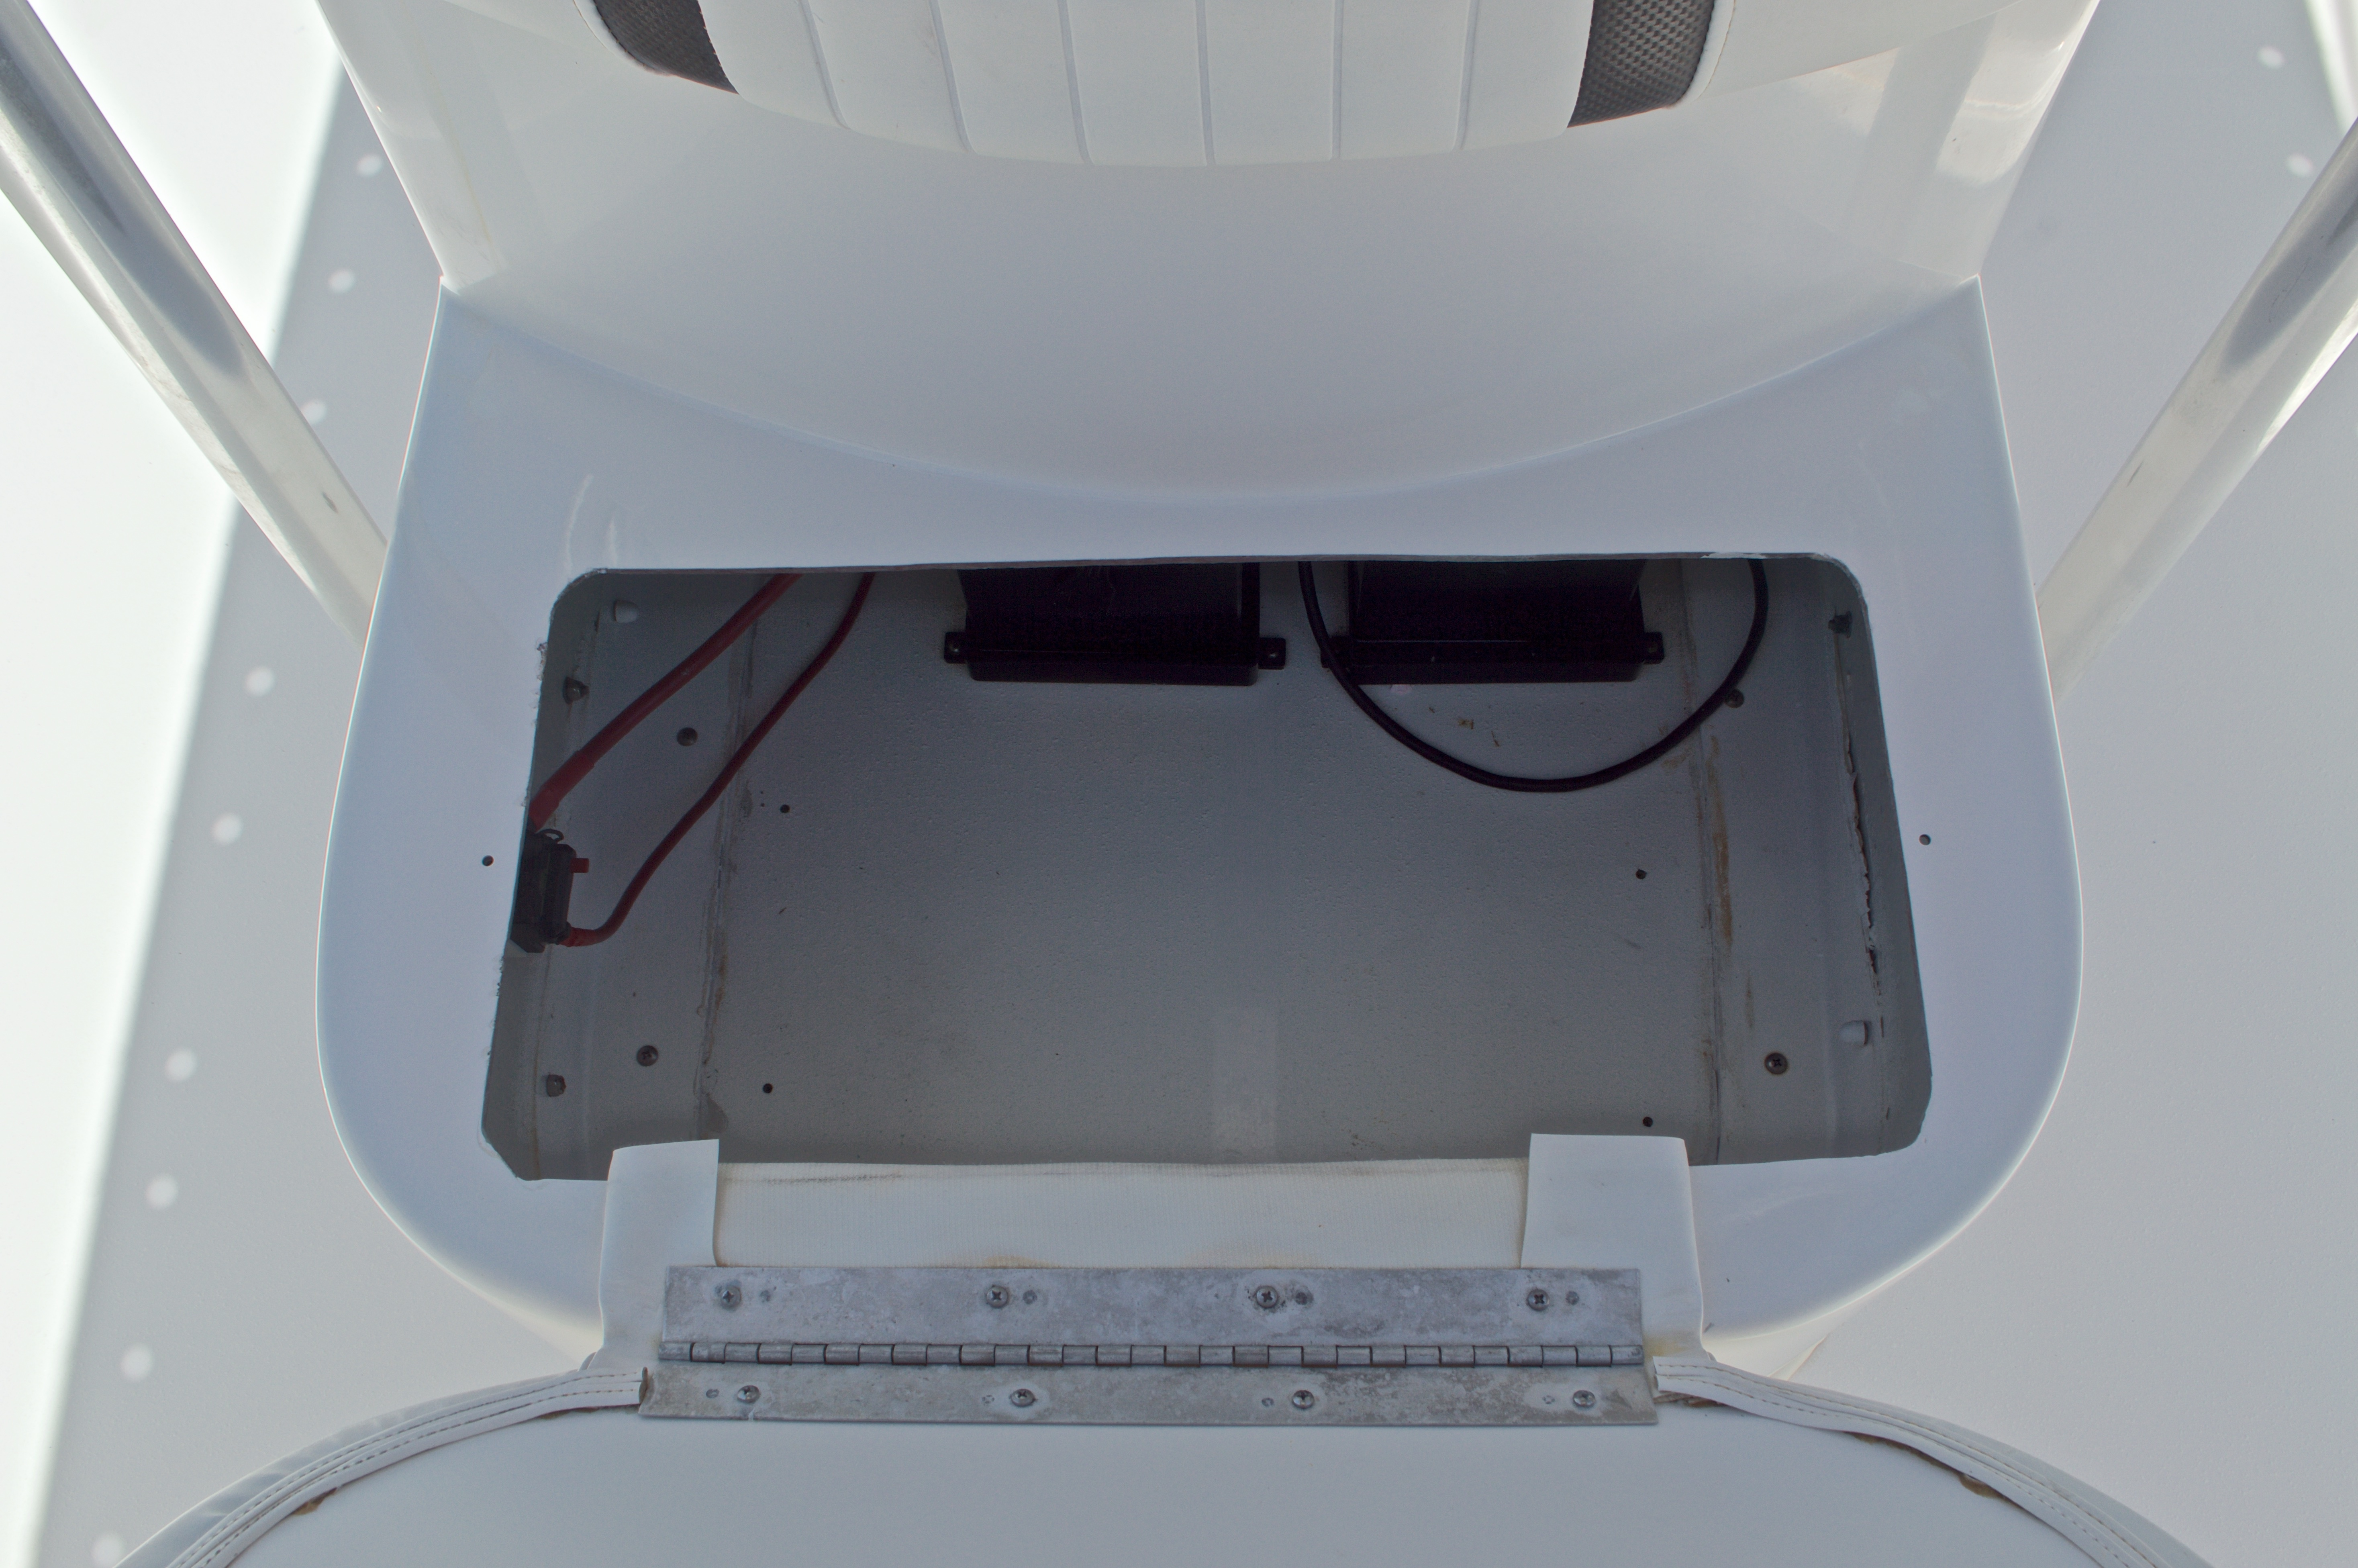 Thumbnail 48 for Used 2005 Sea Chaser 245 Bay Runner LX boat for sale in West Palm Beach, FL